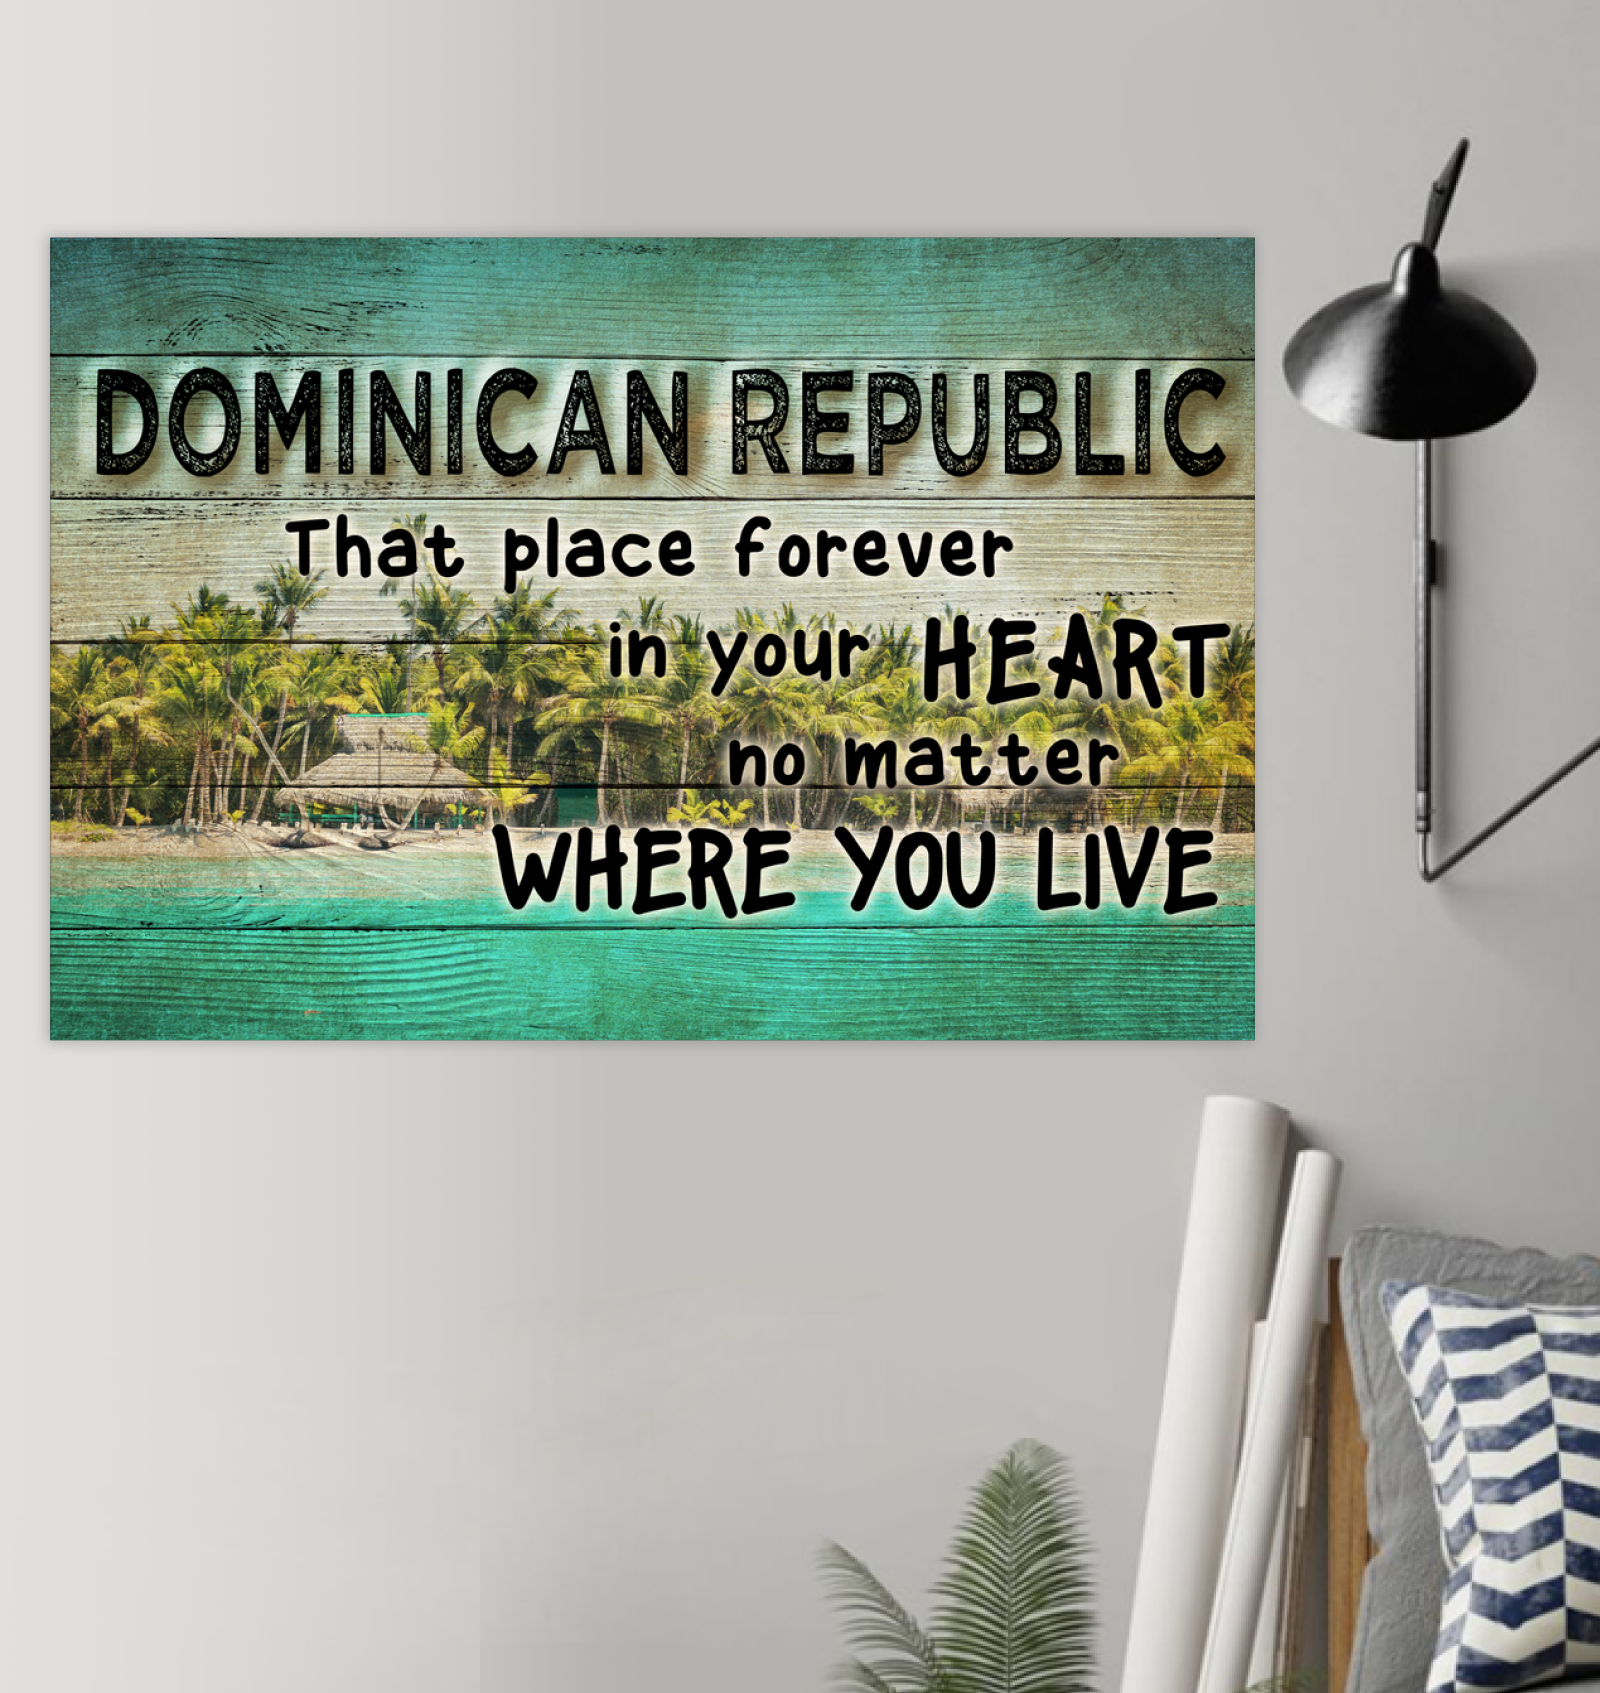 DOMINICAN REPUBLIC THAT PLACE FOREVER IN YOUR HEART NO MATTER WHERE YOUR GO